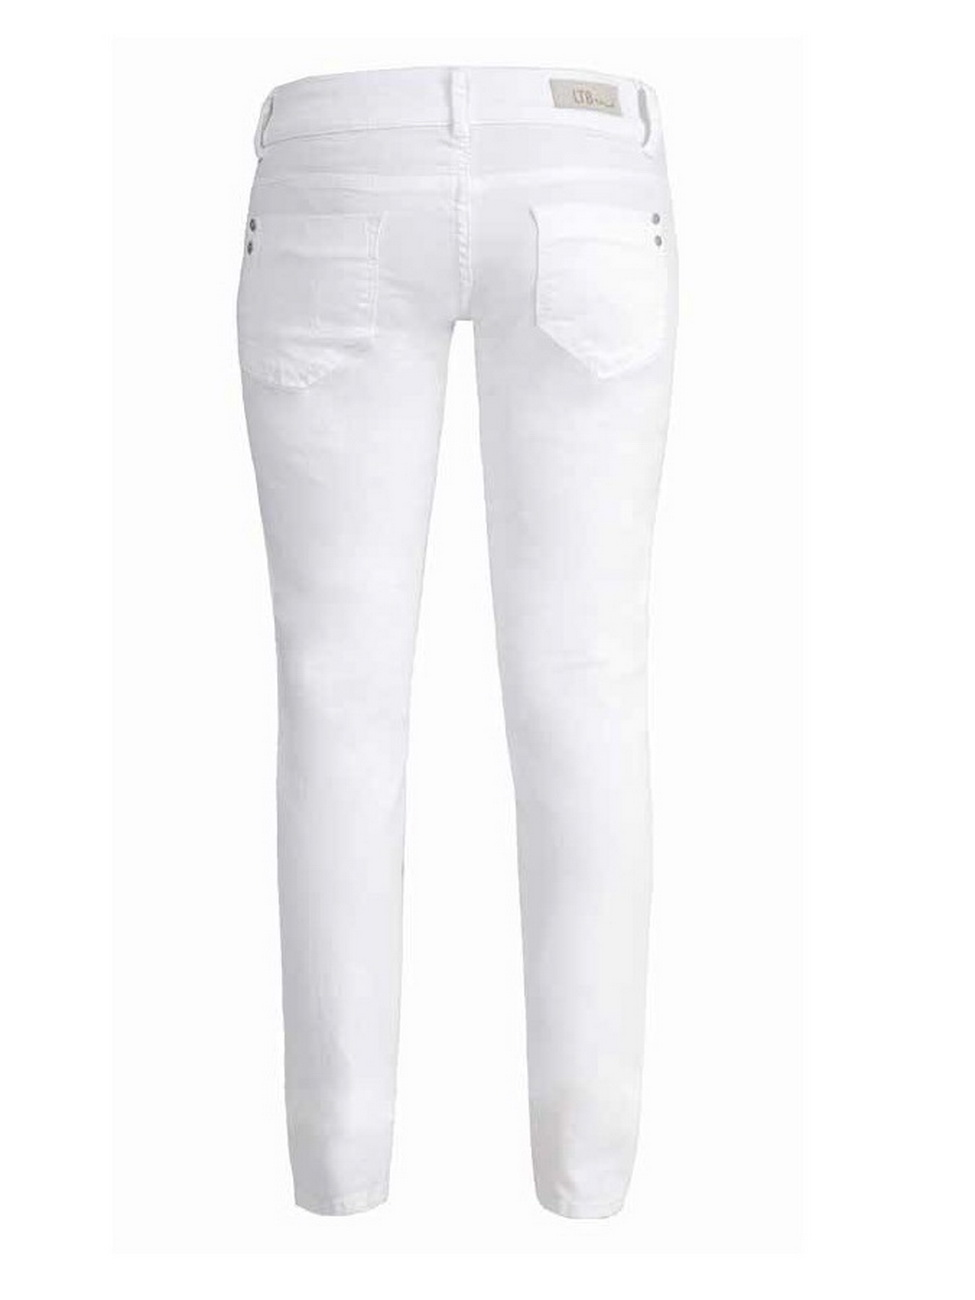 ltb-damen-jeans-molly-slim-fit-wei-white